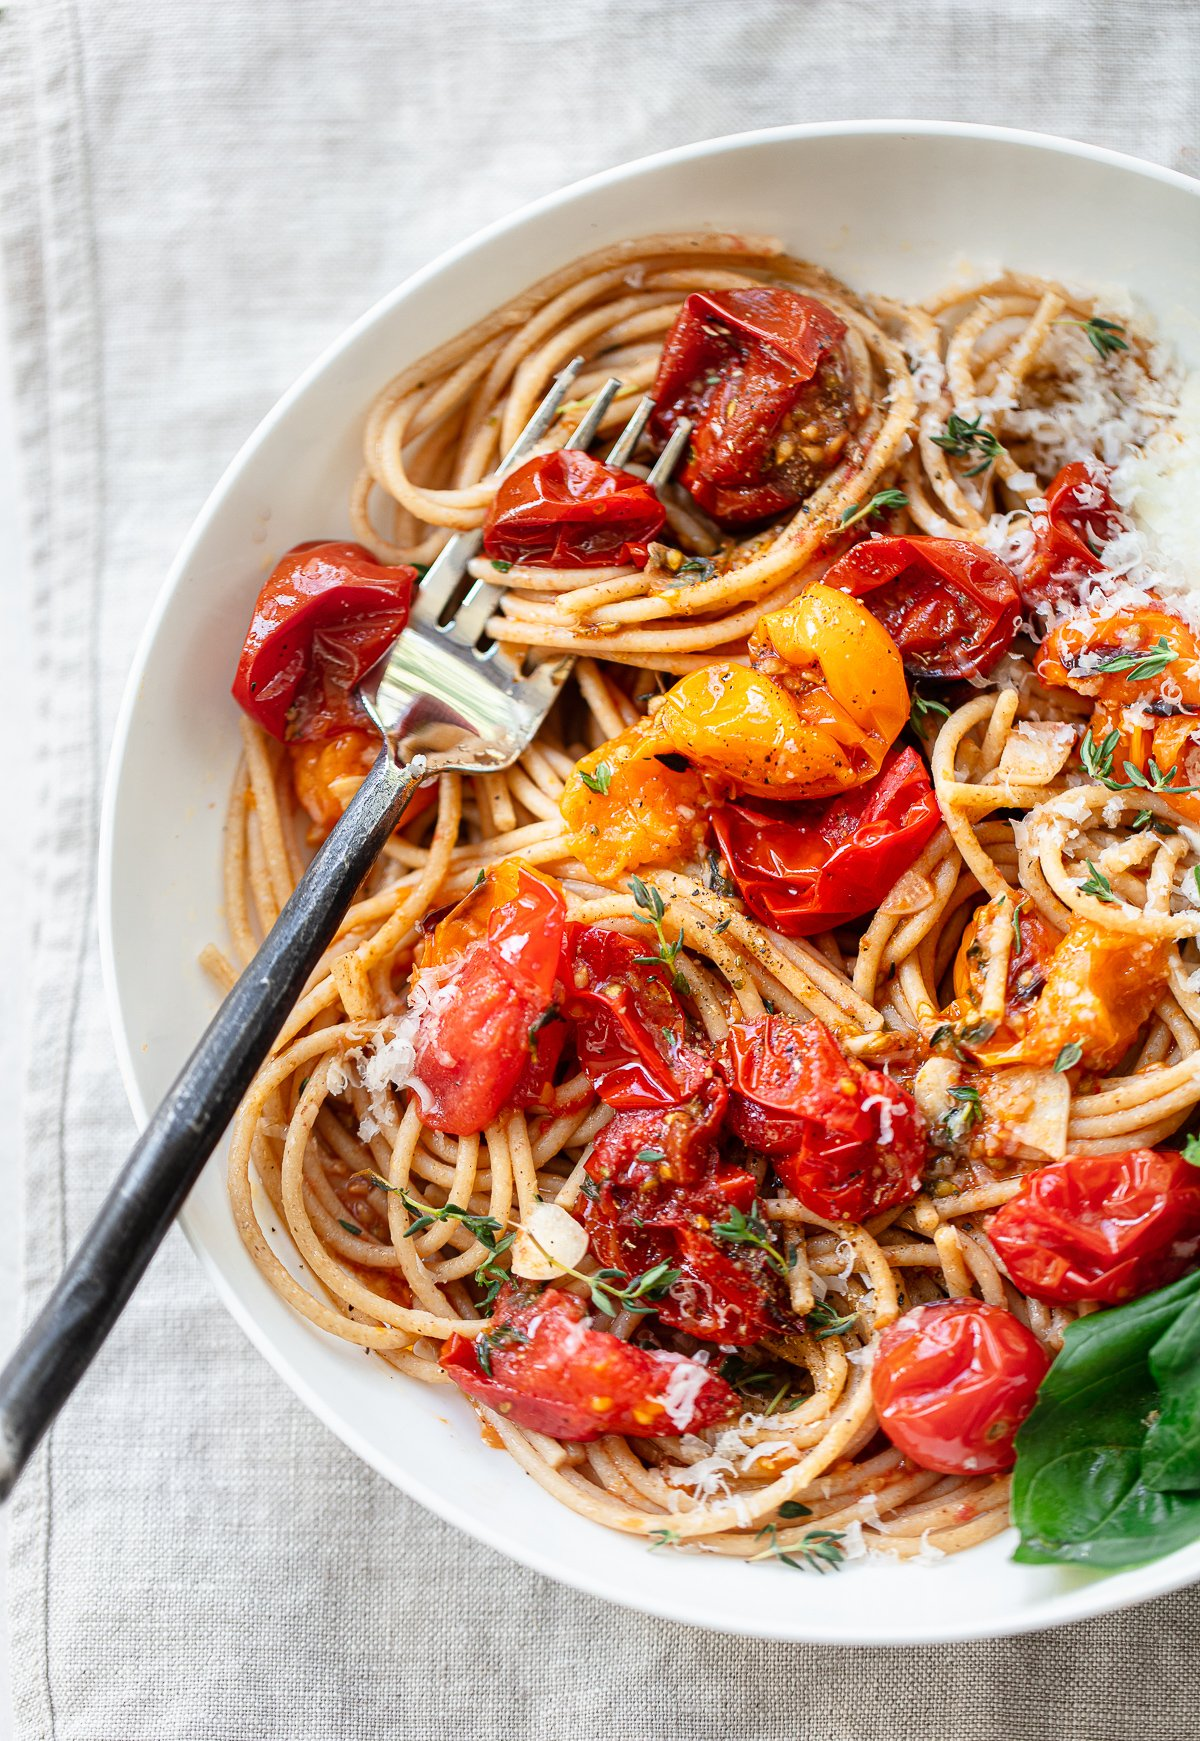 A white bowl filled with spaghetti in a roasted cherry tomato sauce, with fresh basil sprigs and ricotta cheese on the side.